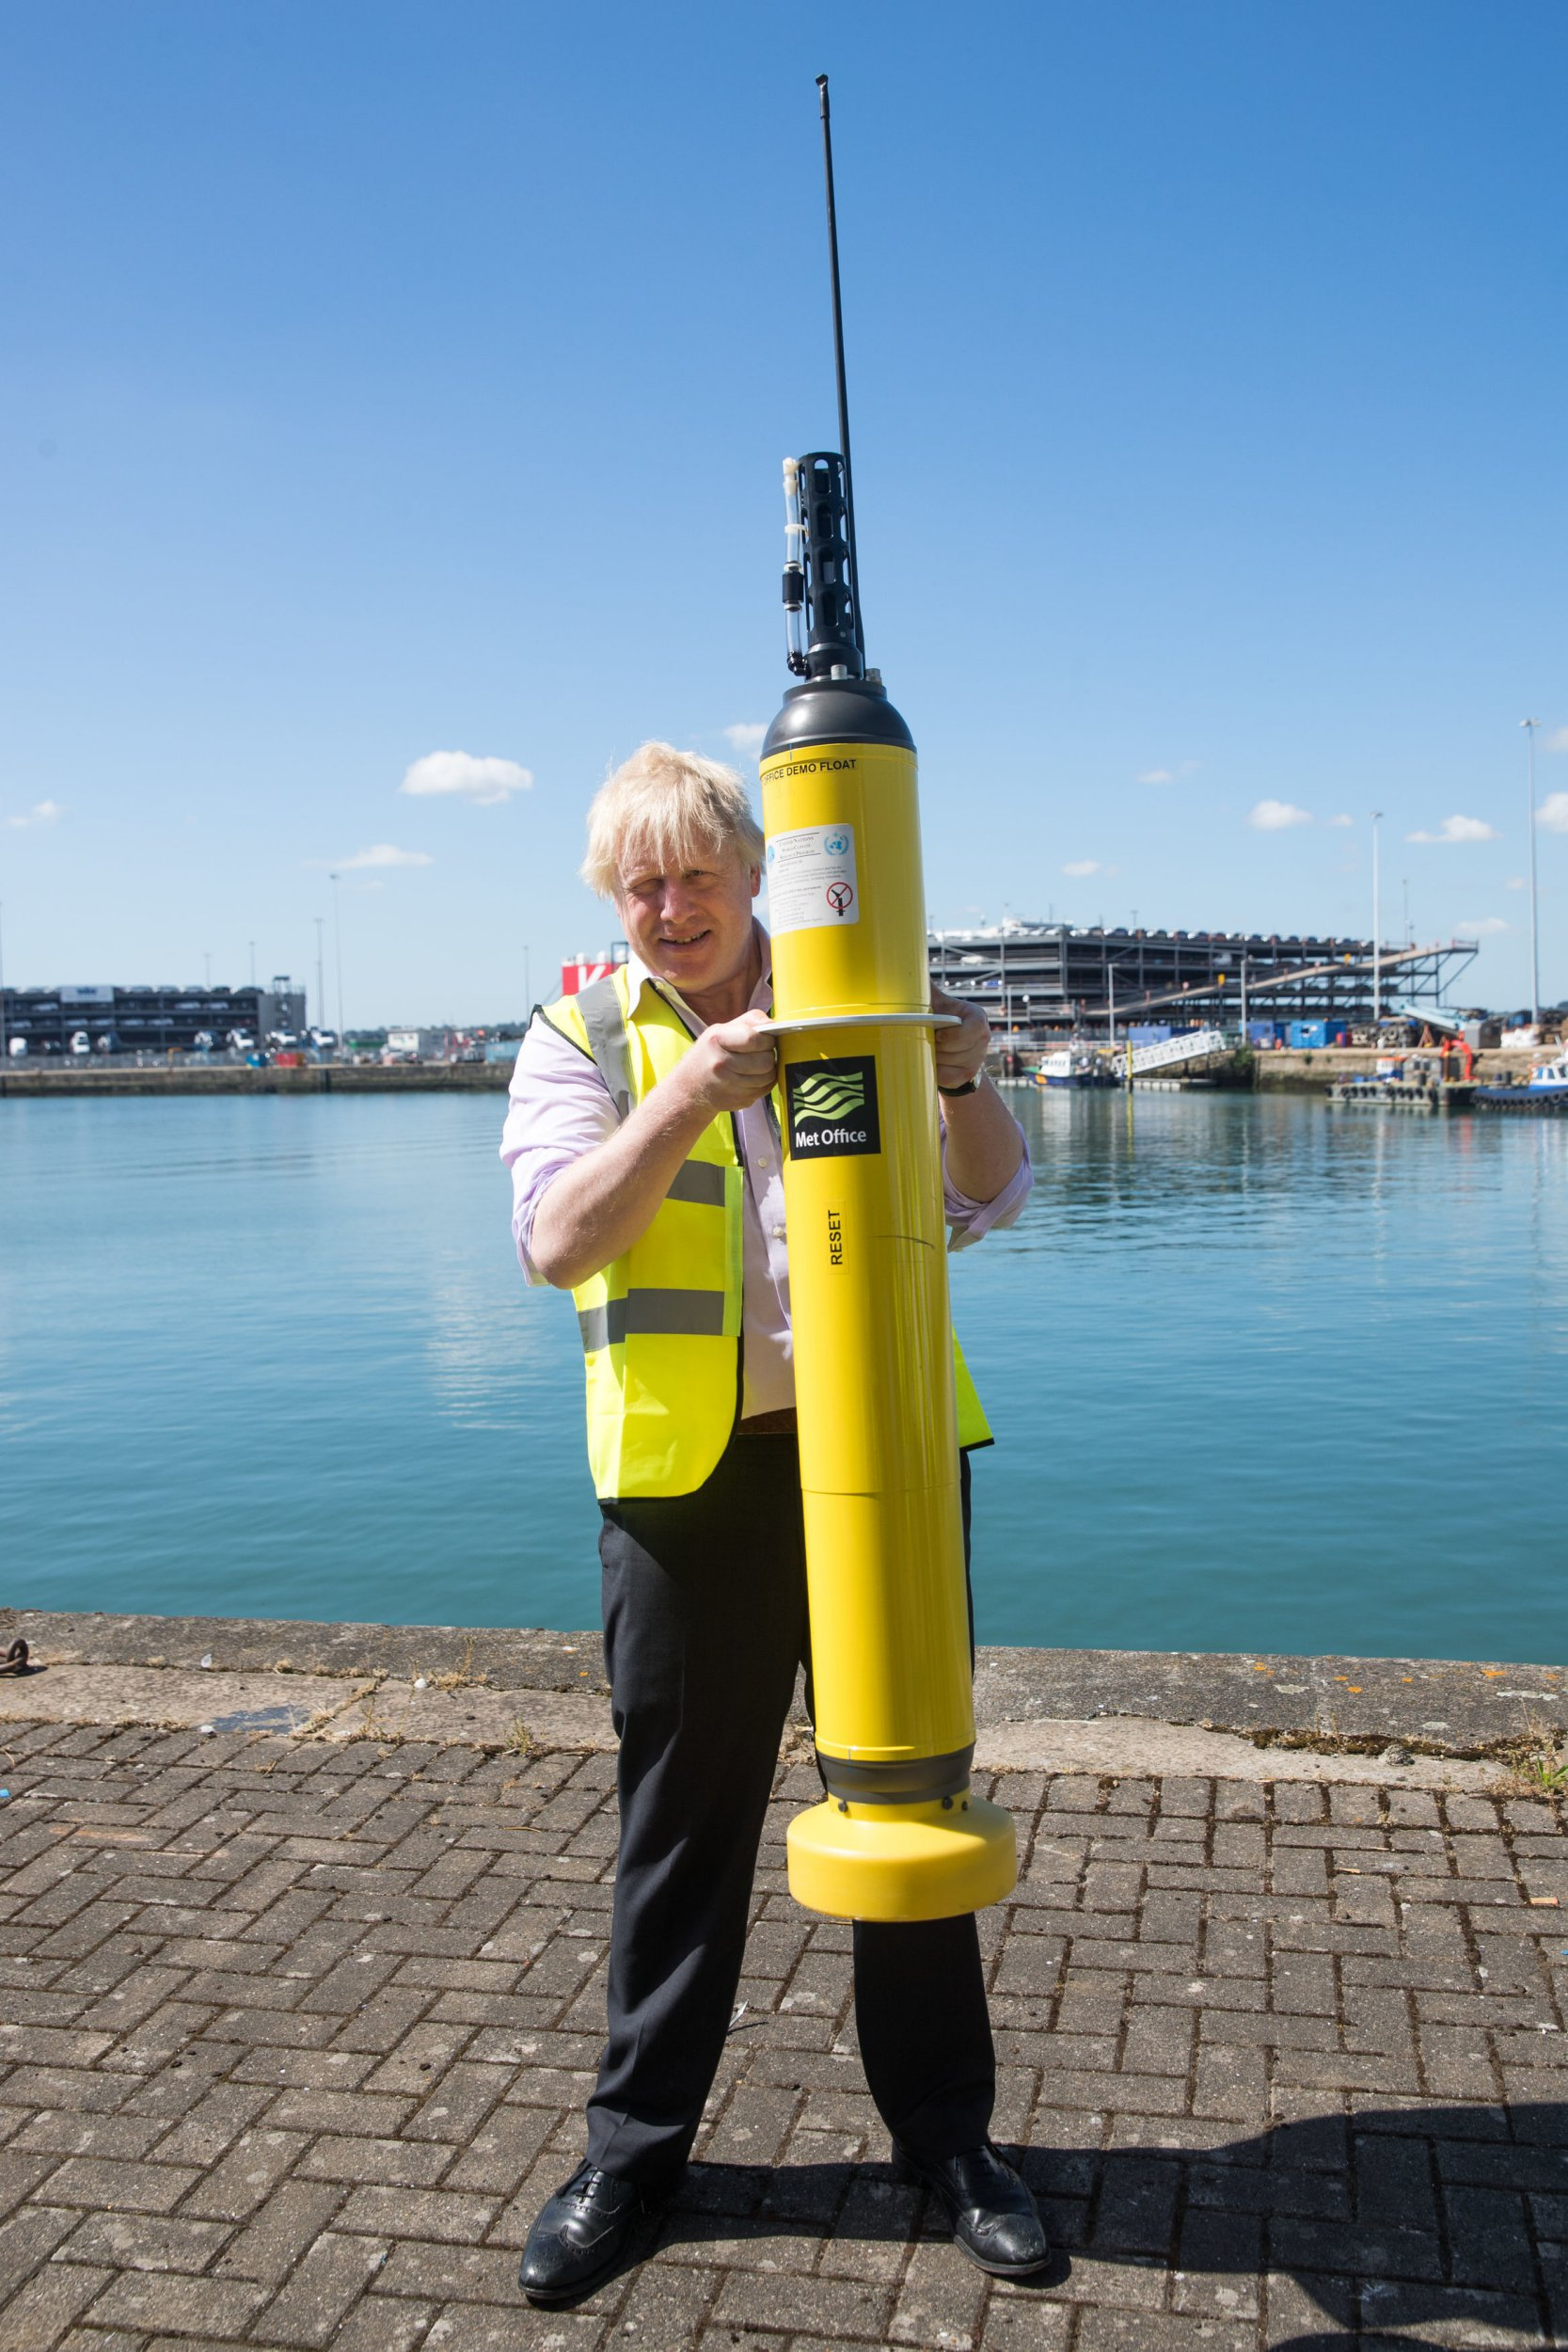 Foreign Secretary, Boris Johnson, holds a demo Met Office Argo float used for measuring ocean temperatures and salinity, during his visit to the National Oceanography Centre in Southampton ahead of the forthcoming FCO Oceans Strategy. PRESS ASSOCIATION Photo. Picture date: Friday June 22, 2018. Photo credit should read: Matt Cardy/PA Wire